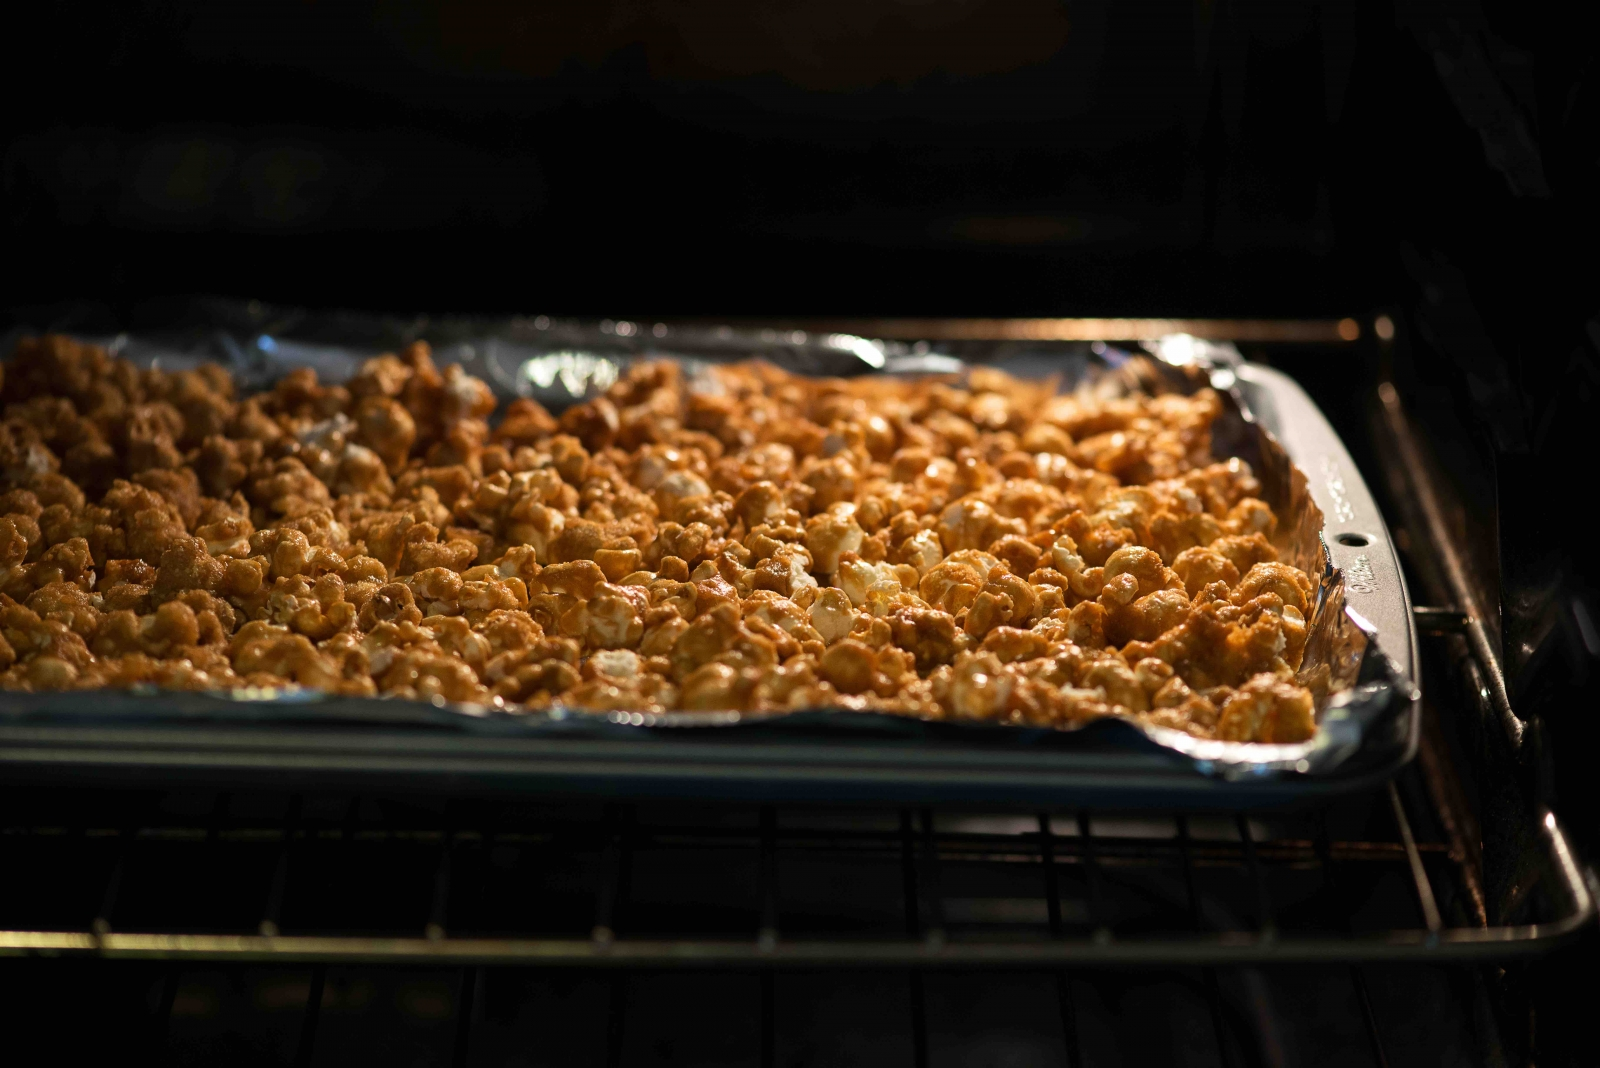 The last step--cooking your caramel corn. Photo courtesy of the Popcorn Board.